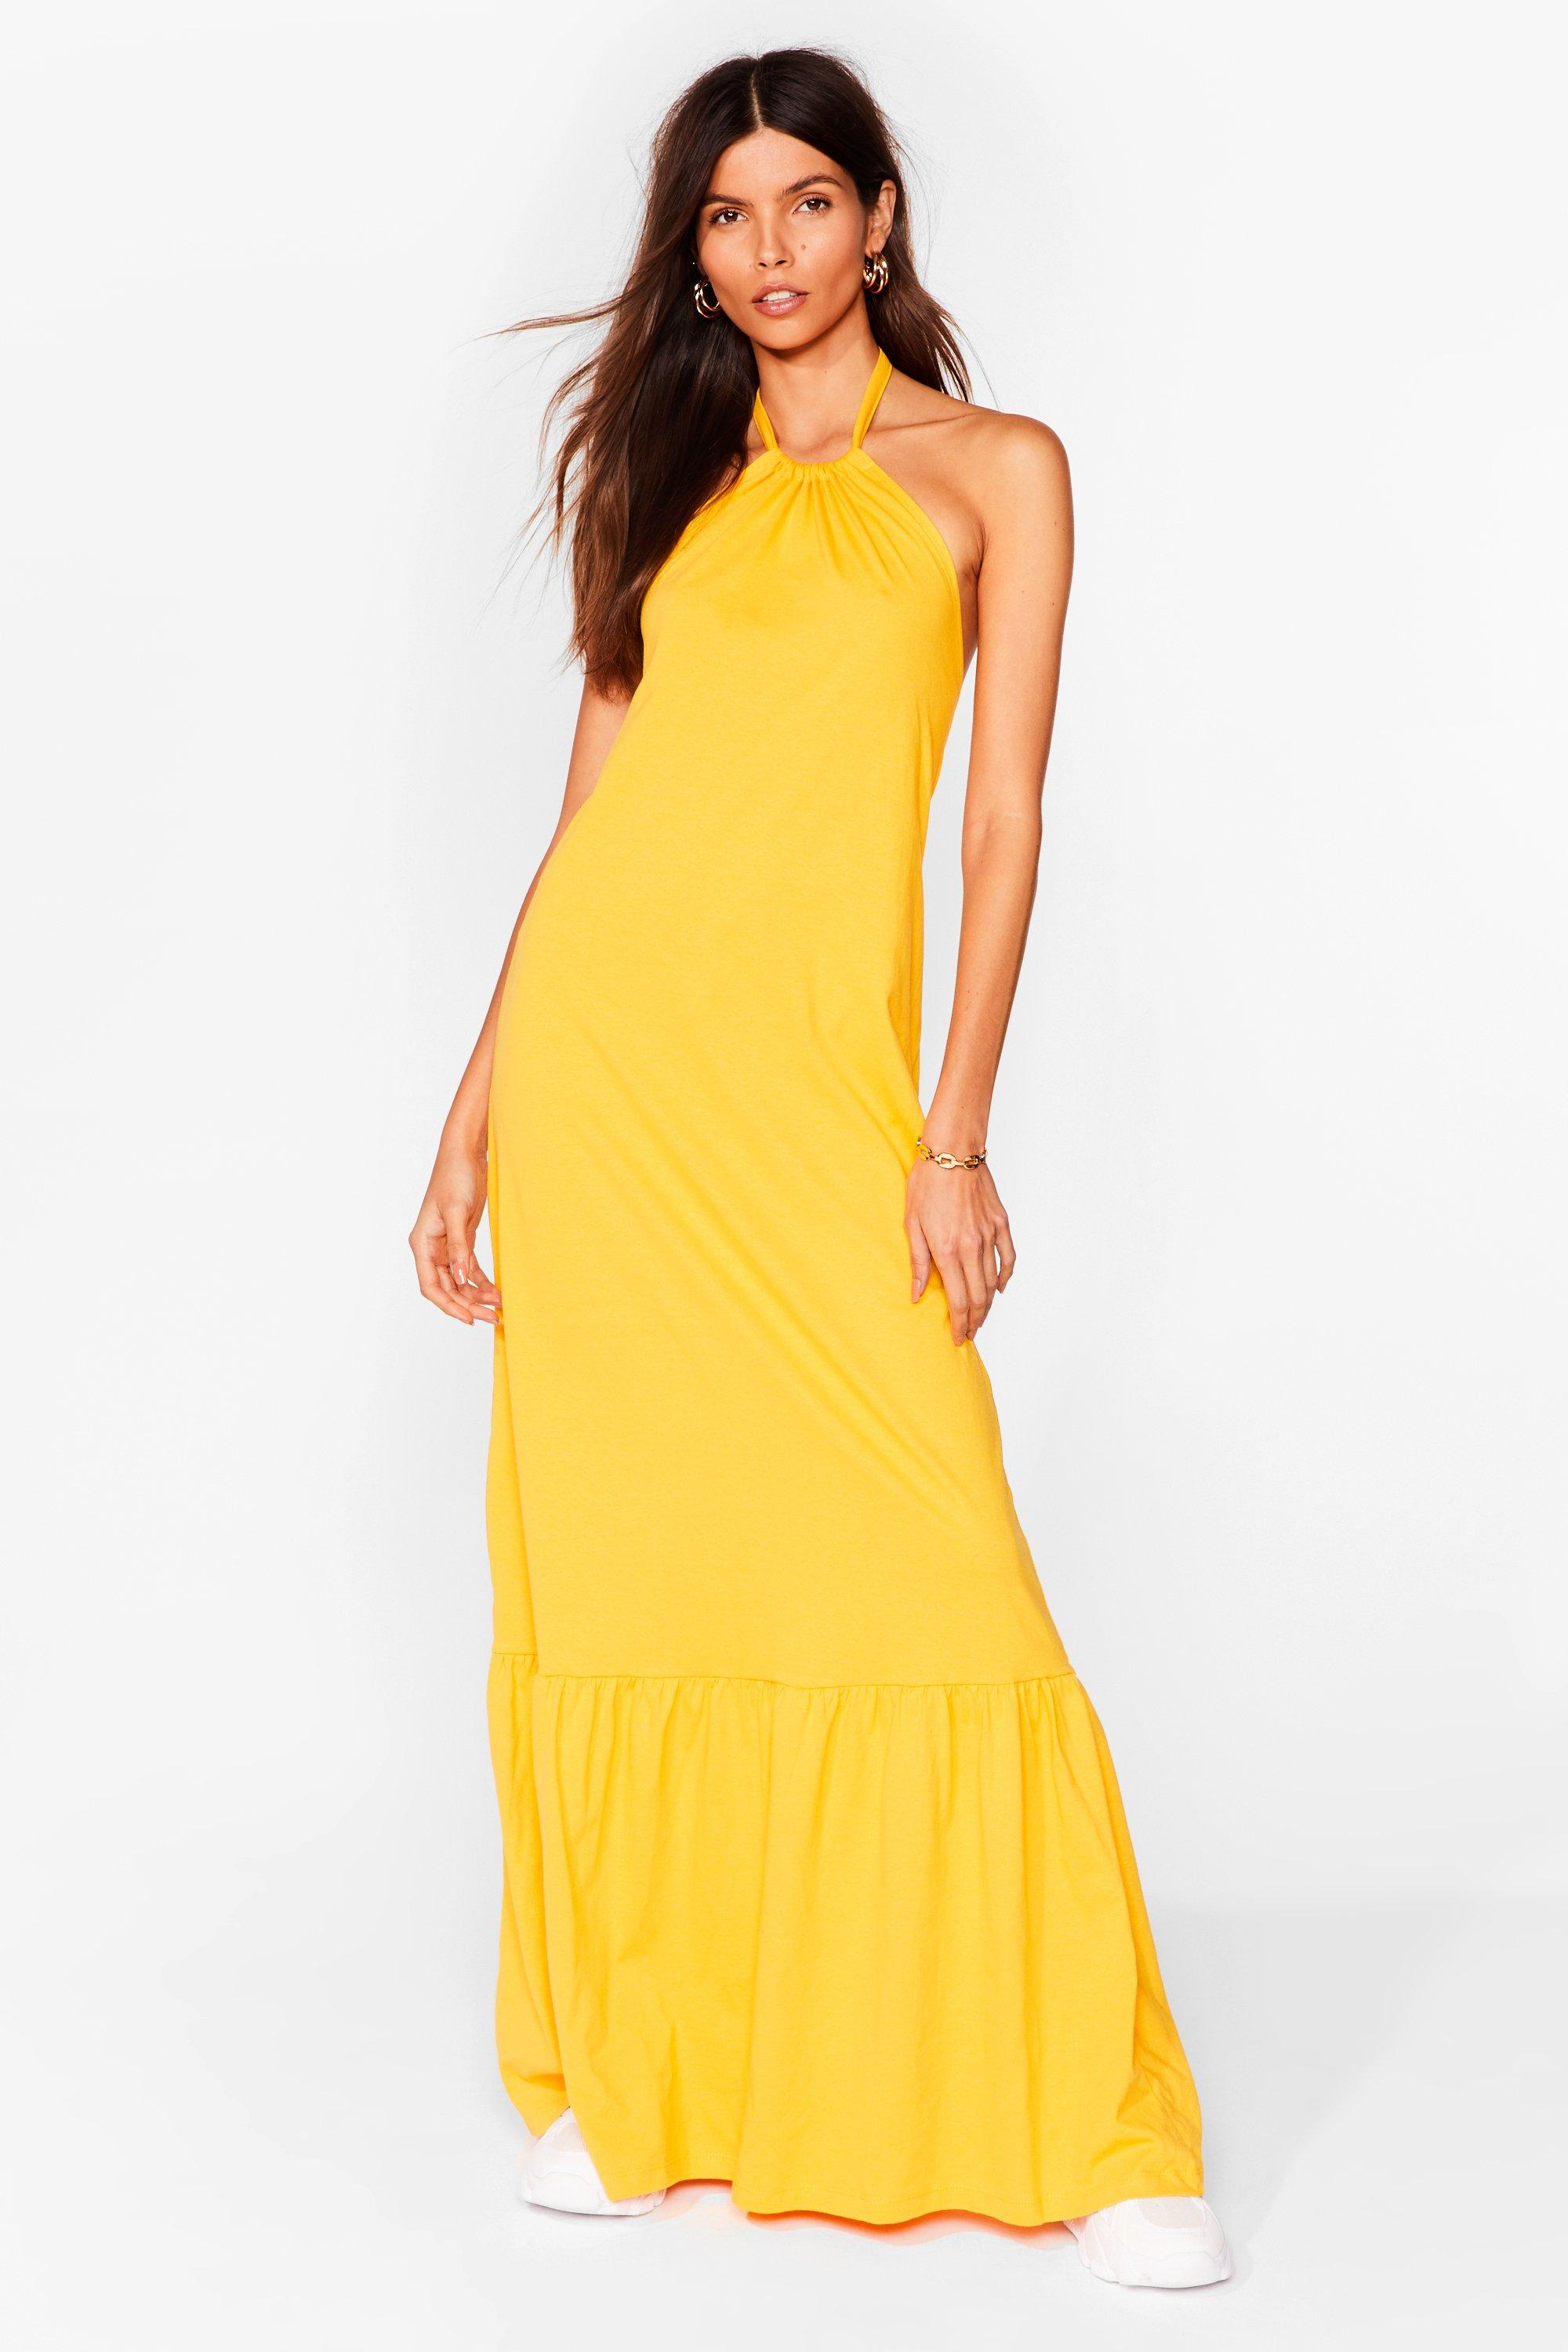 Ain't No Halter Back Girl Relaxed Maxi Dress